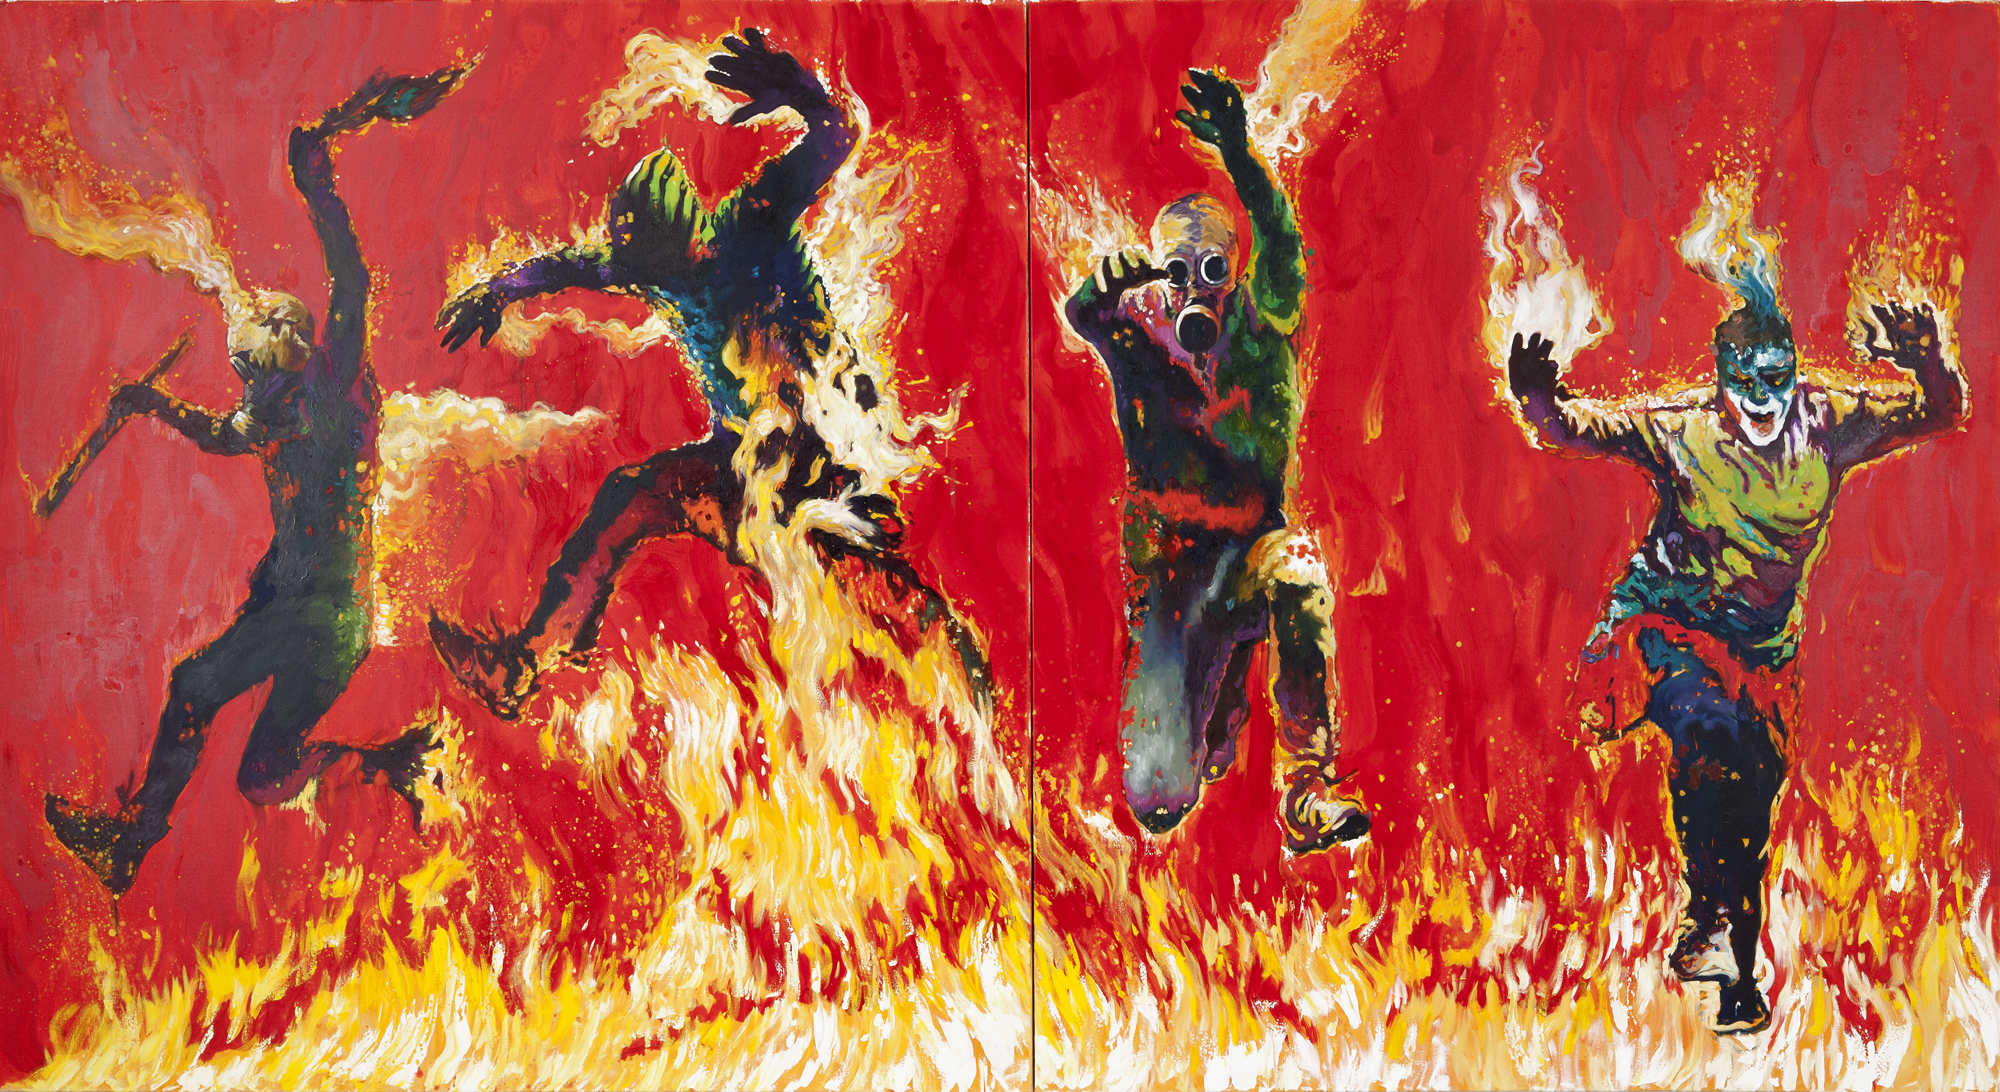 Inferno, 2012. Oil on canvas, two panels of 80 x 72 in. each.